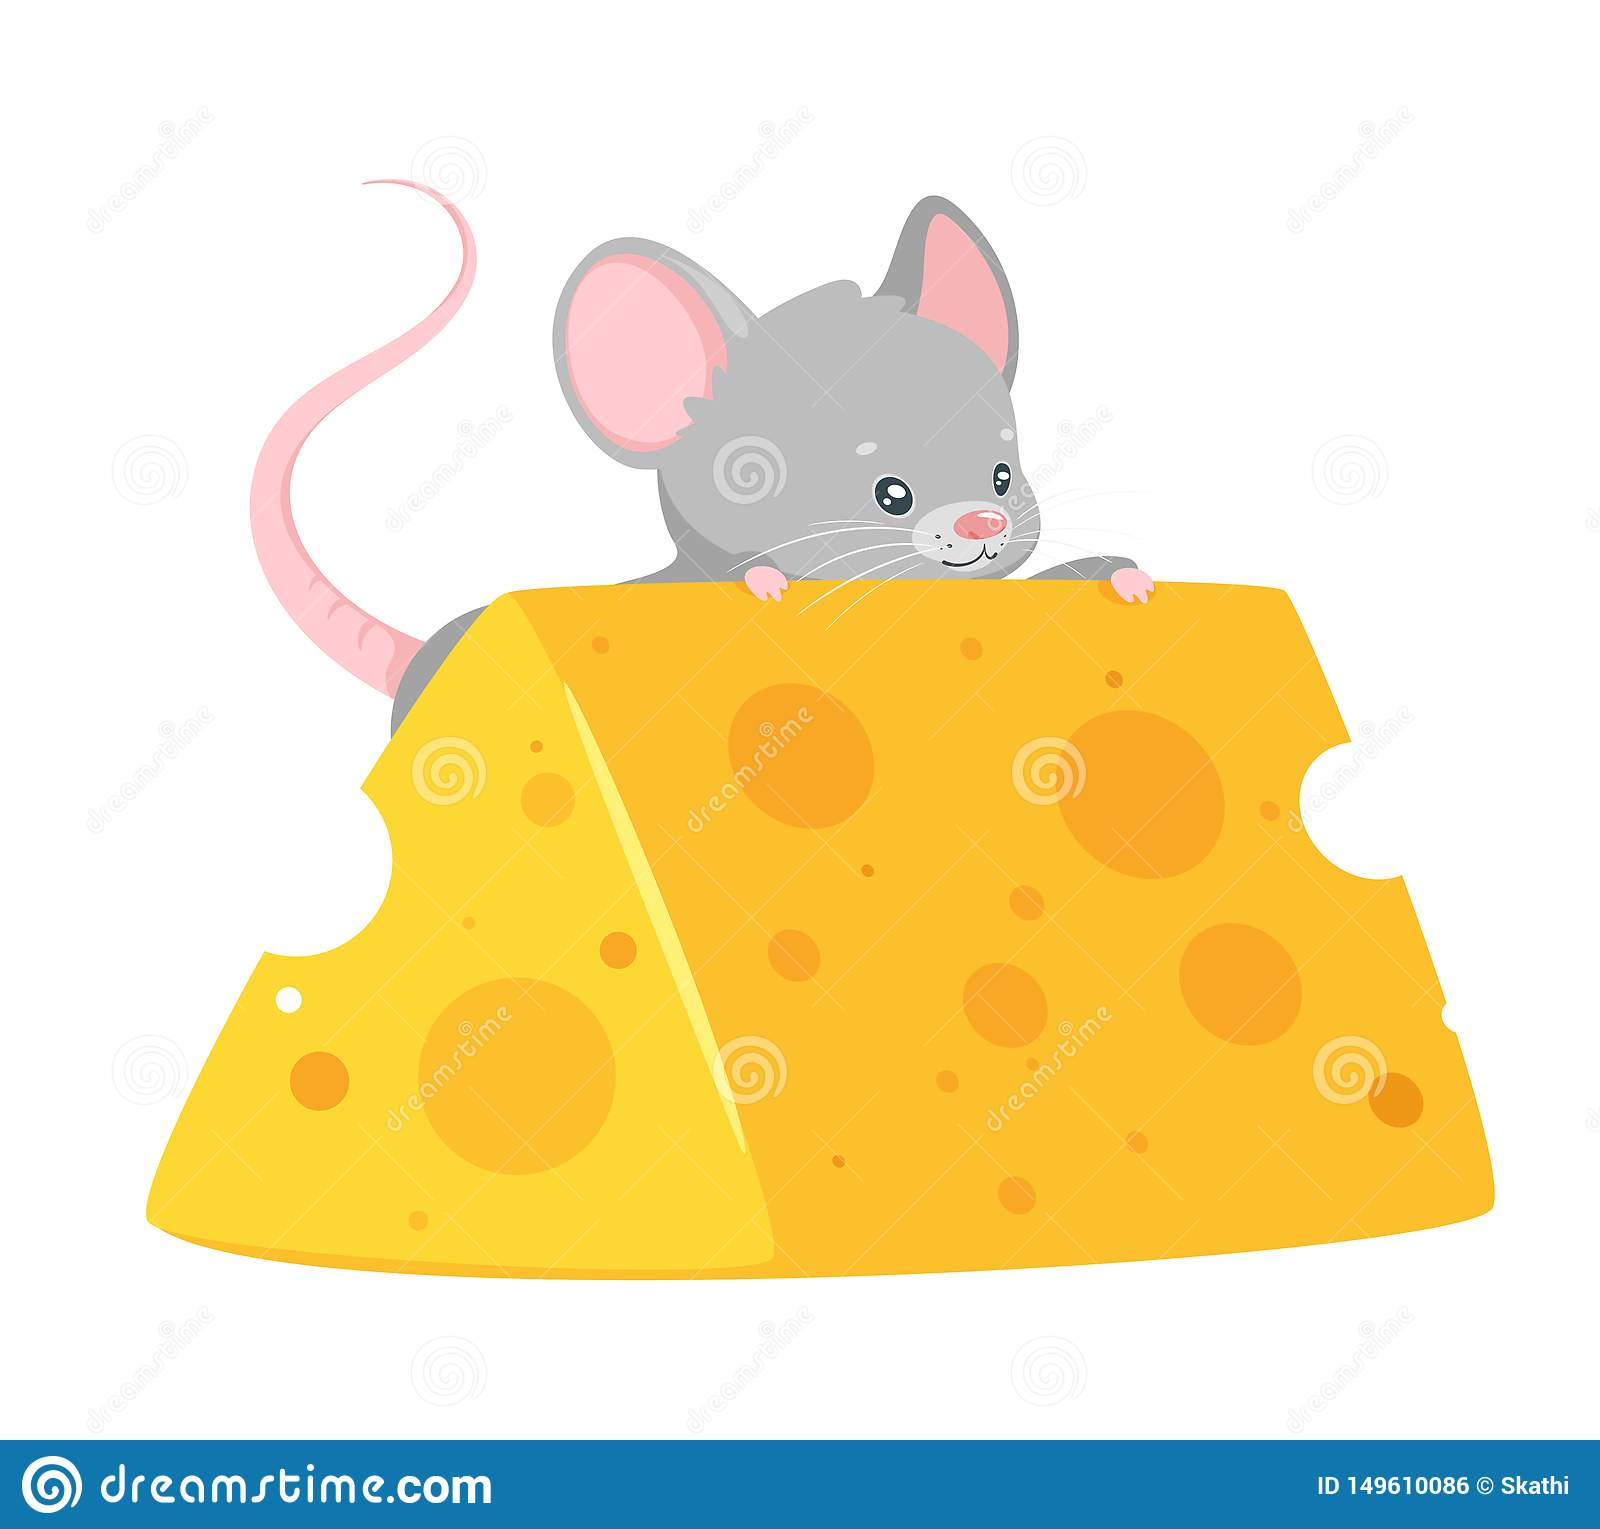 Cheese Clipart Stock Illustrations 4 959 Cheese Clipart Stock Illustrations Vectors Clipart Dreamstime Browse this featured selection from the web for use in websites, blogs, social media and your other products. https www dreamstime com baby mouse eating cheese flat vector illustration cute rat holding dairy product isolated clipart children book recipe drawing image149610086